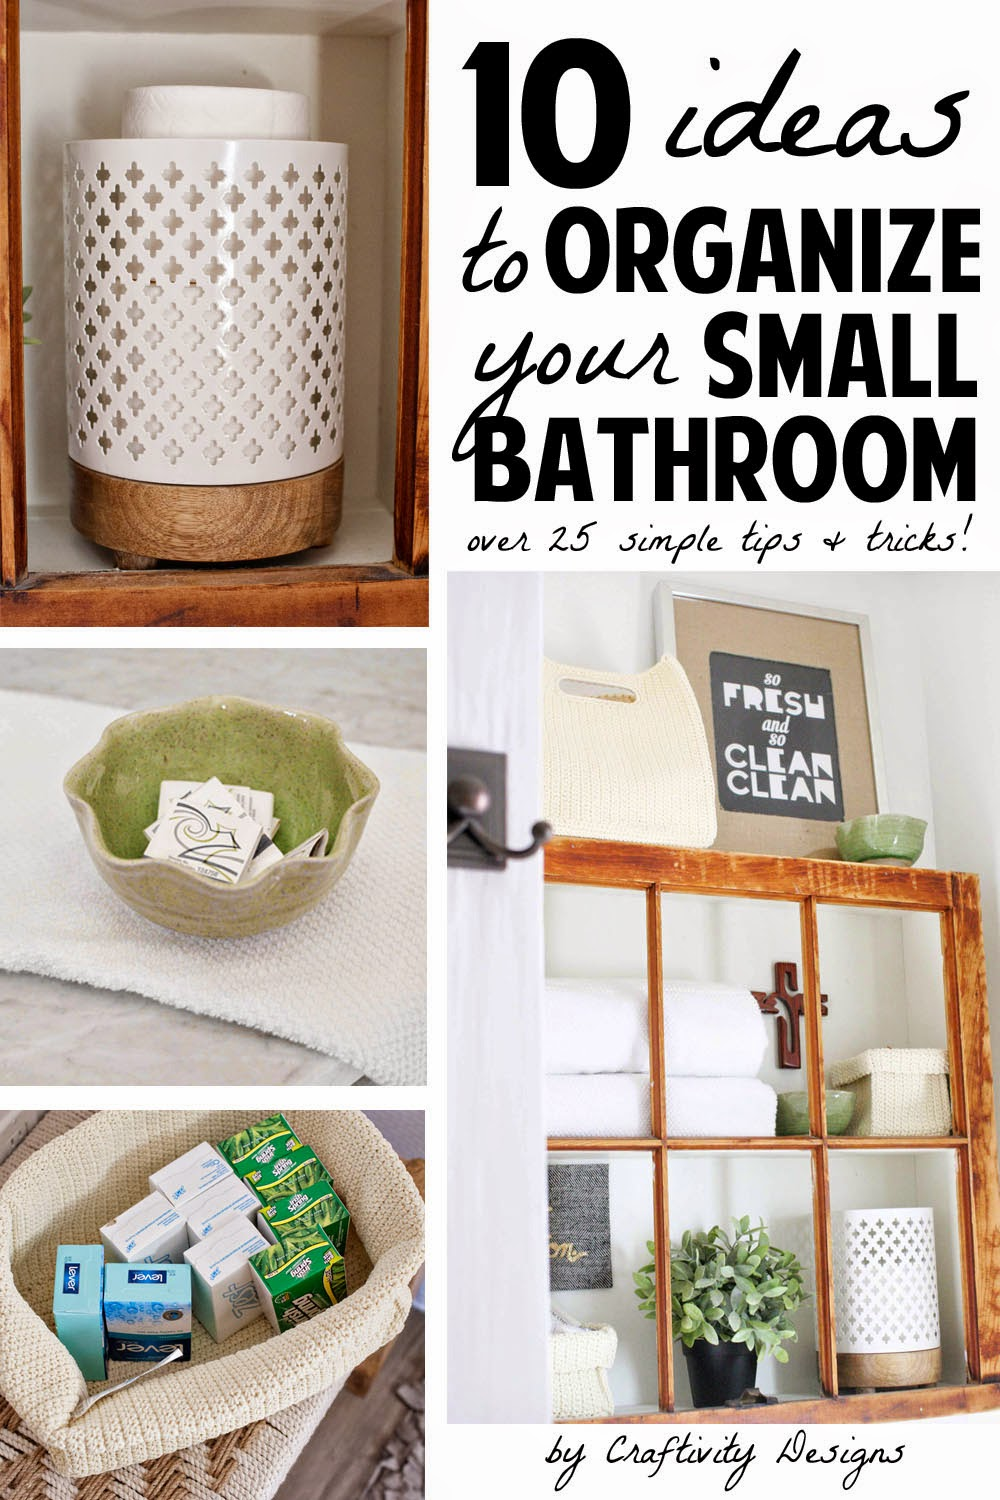 Organizing Small Bathrooms